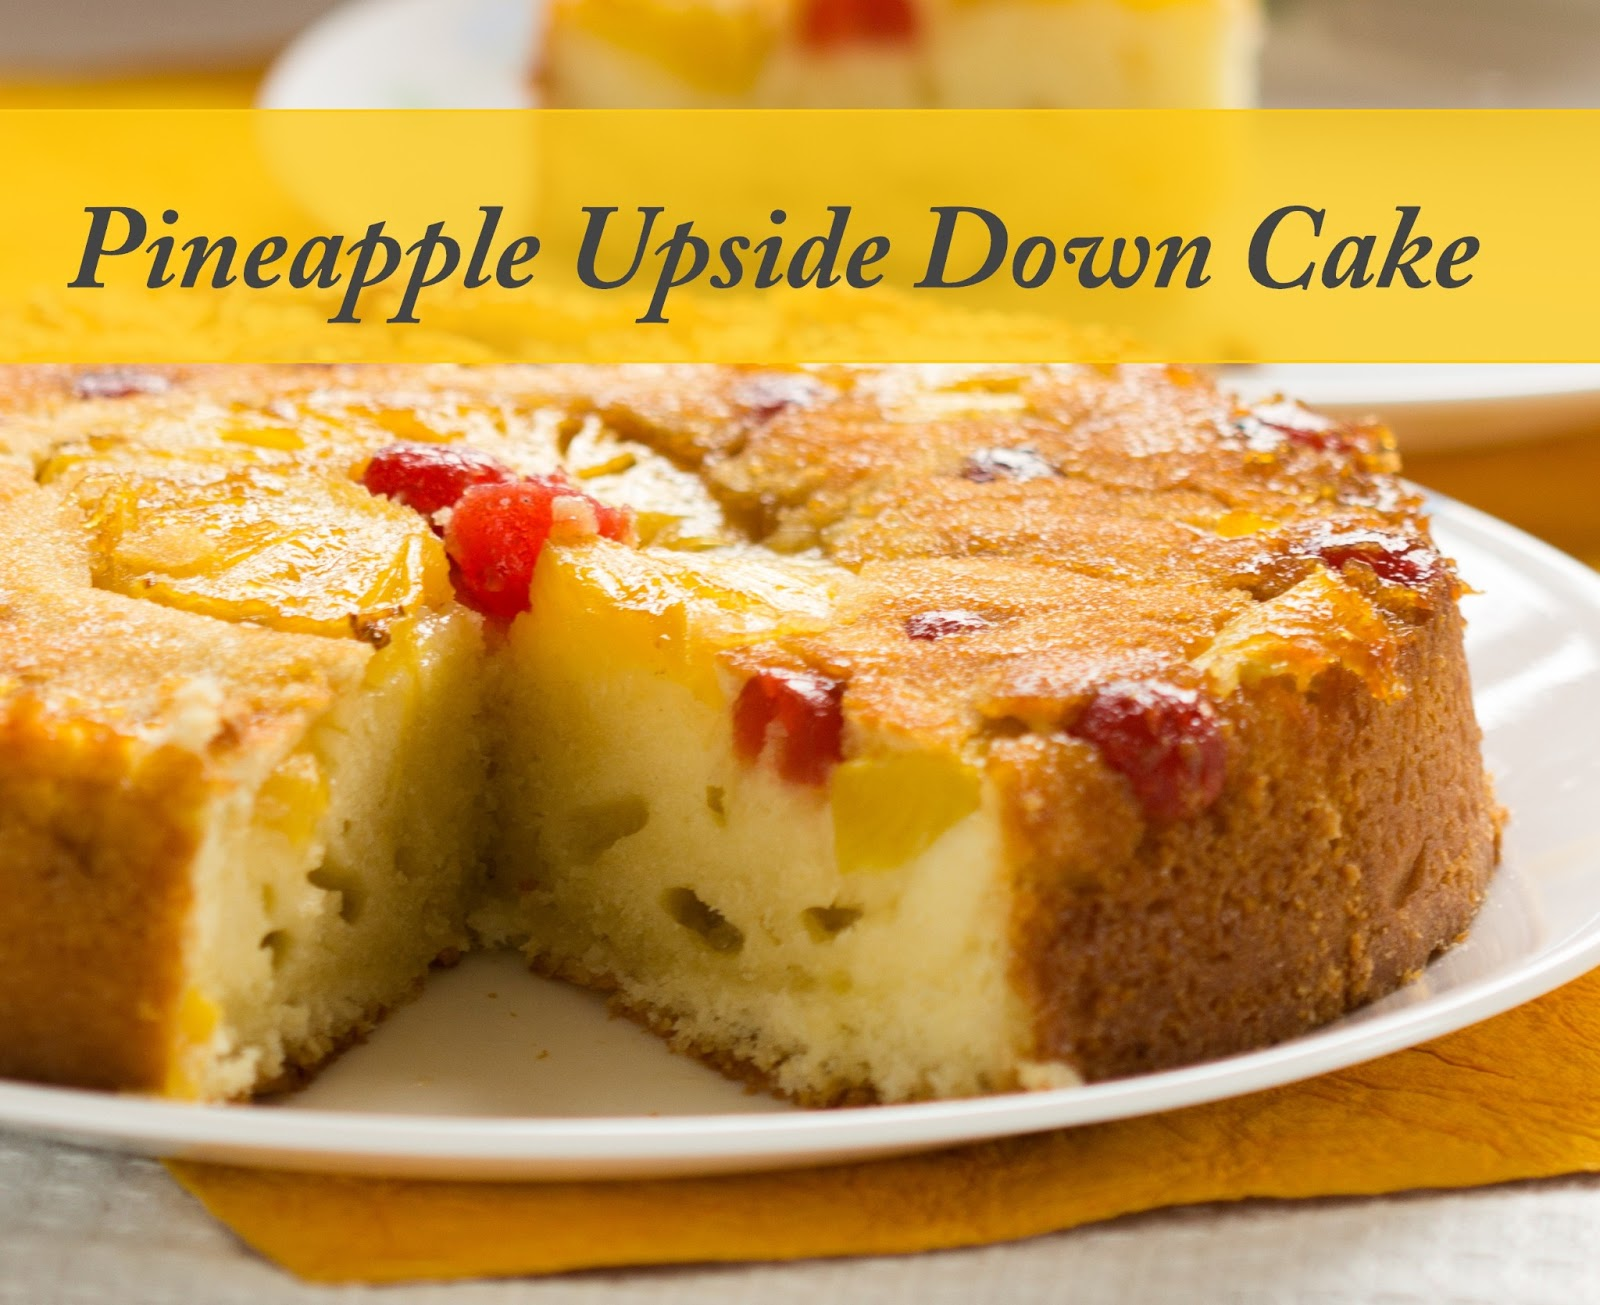 Caramelized Pineapple Upside Down Cake